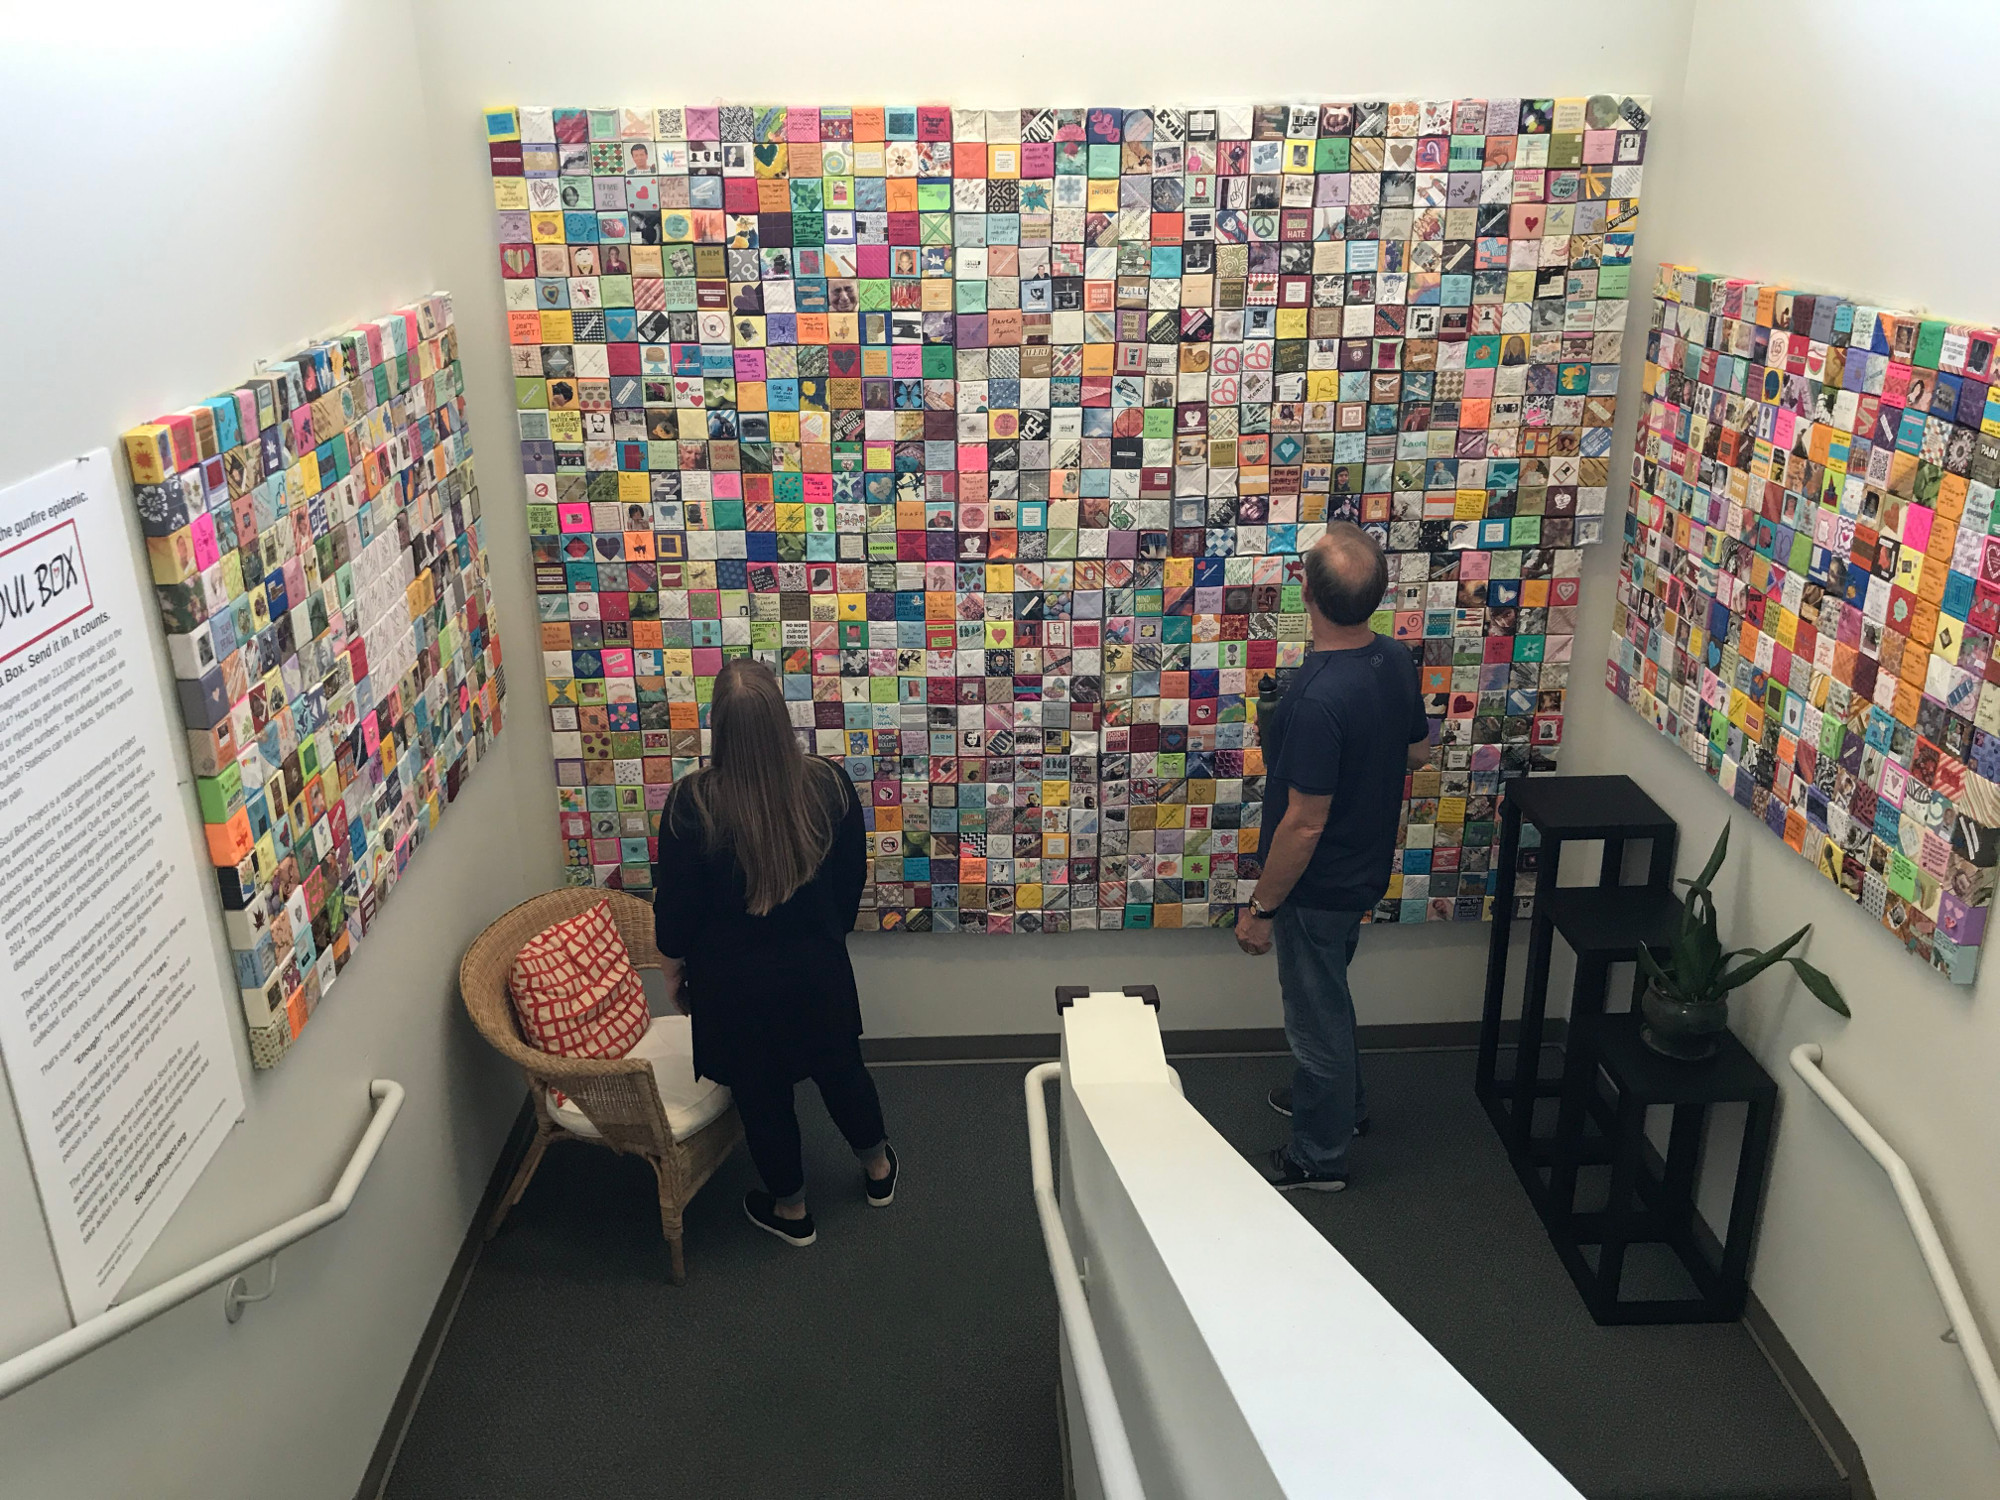 Viewing Soul Box Exhibit in Stairwell at Hatch